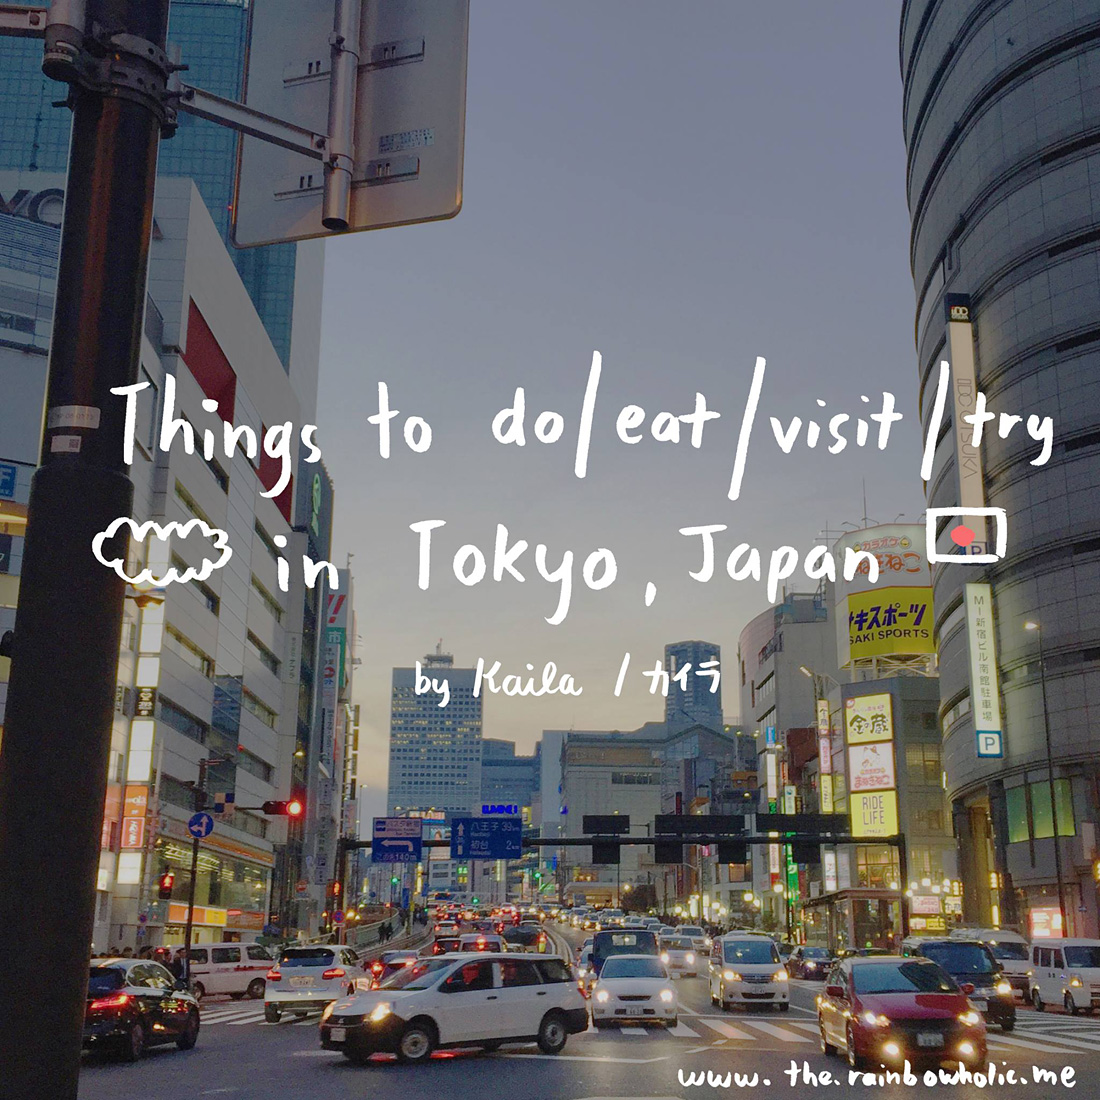 things-to-do-eat-visit-try-in-tokyo